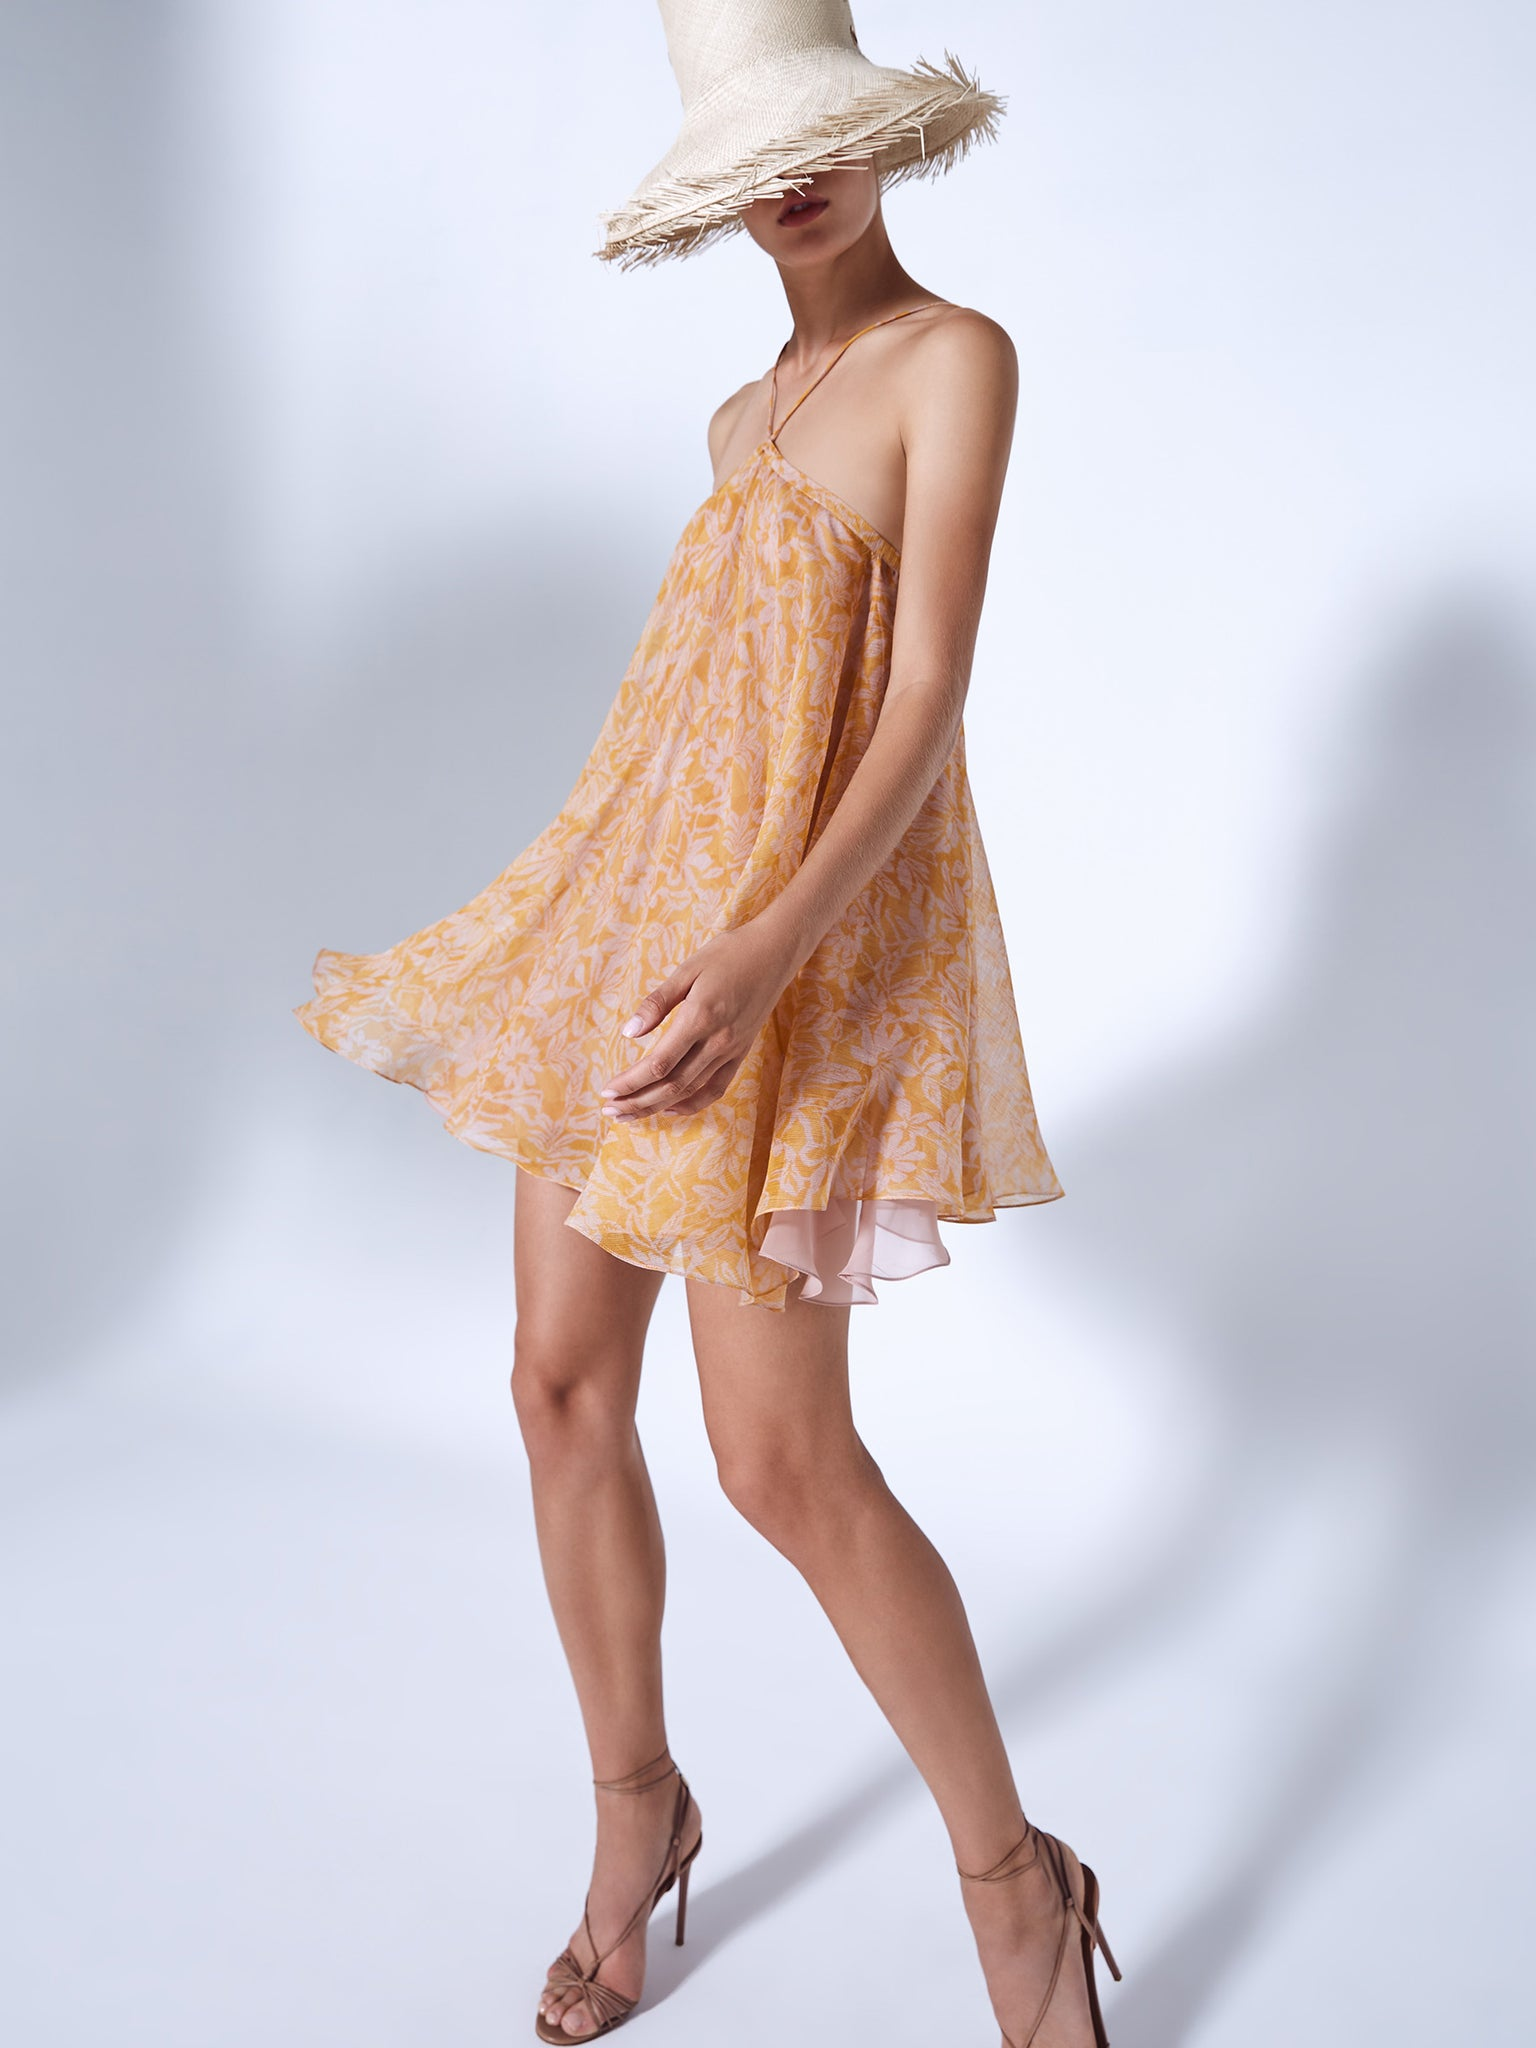 Alexis Amnia swing mini dress in orange and lilac printed chiffon fabric featuring a halter neckline - Rear View